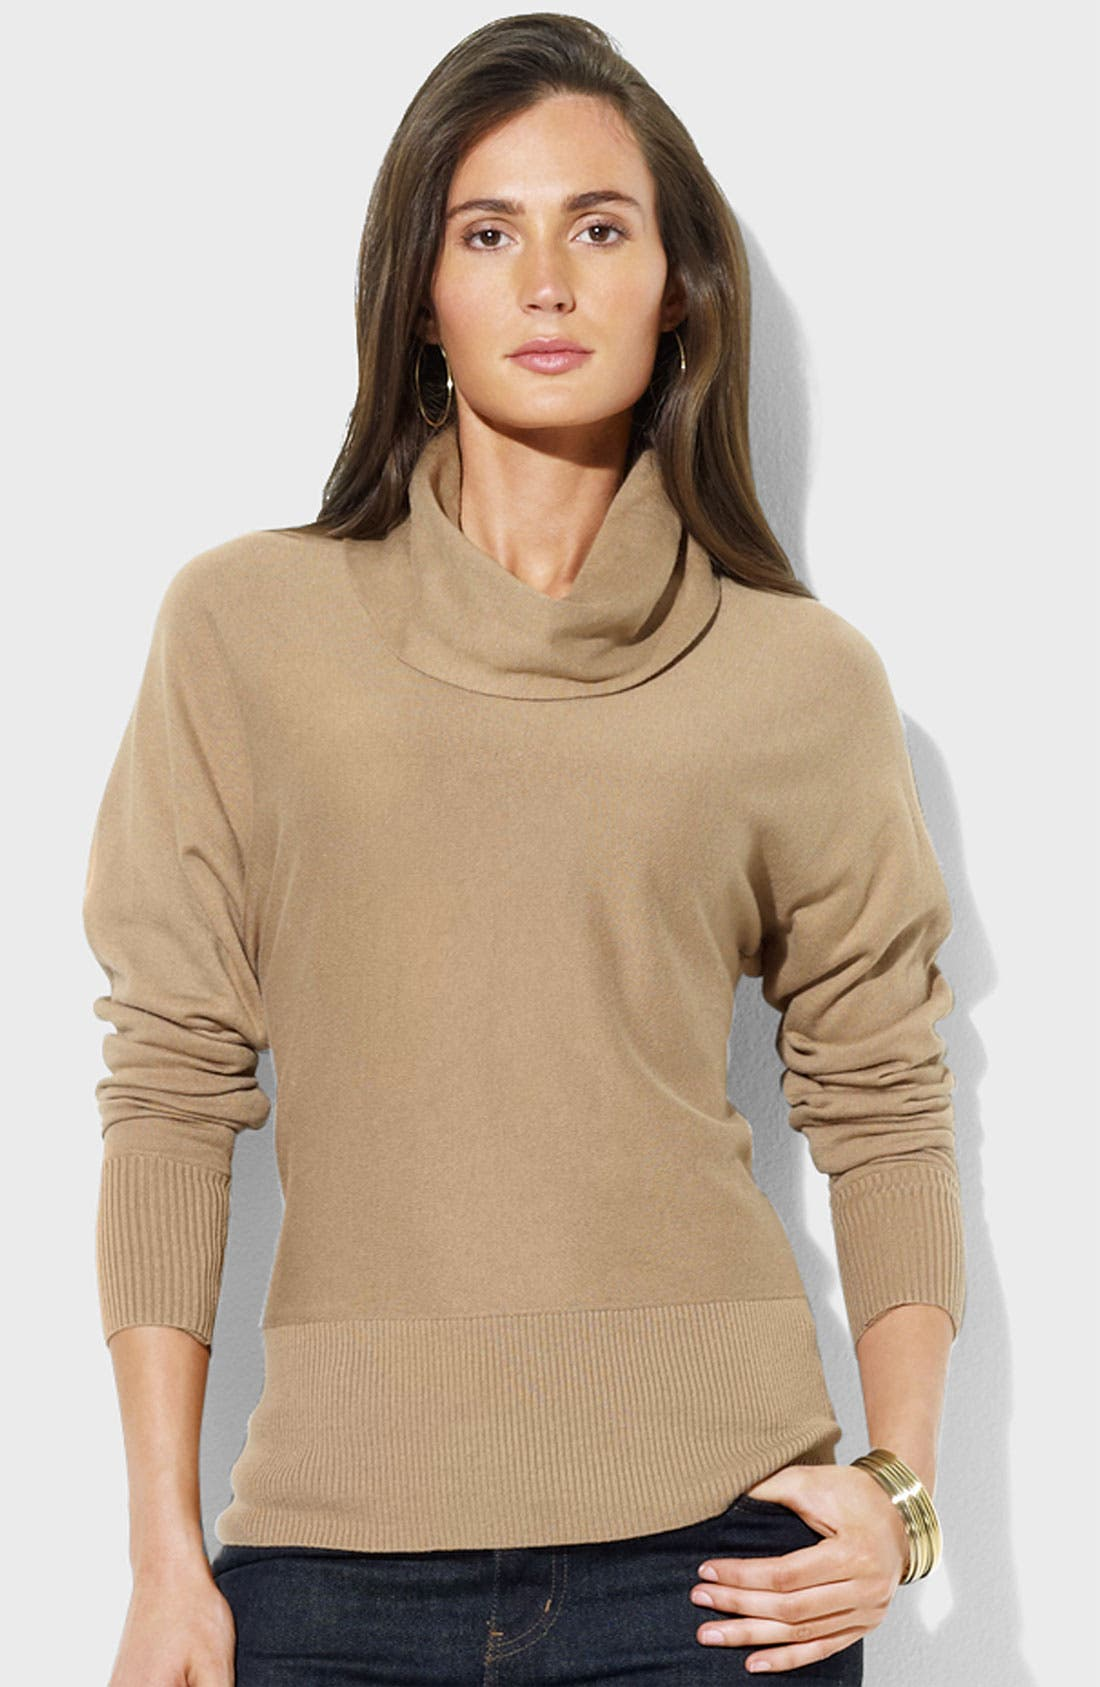 Alternate Image 1 Selected - Lauren Ralph Lauren Cowl Neck Top (Petite)